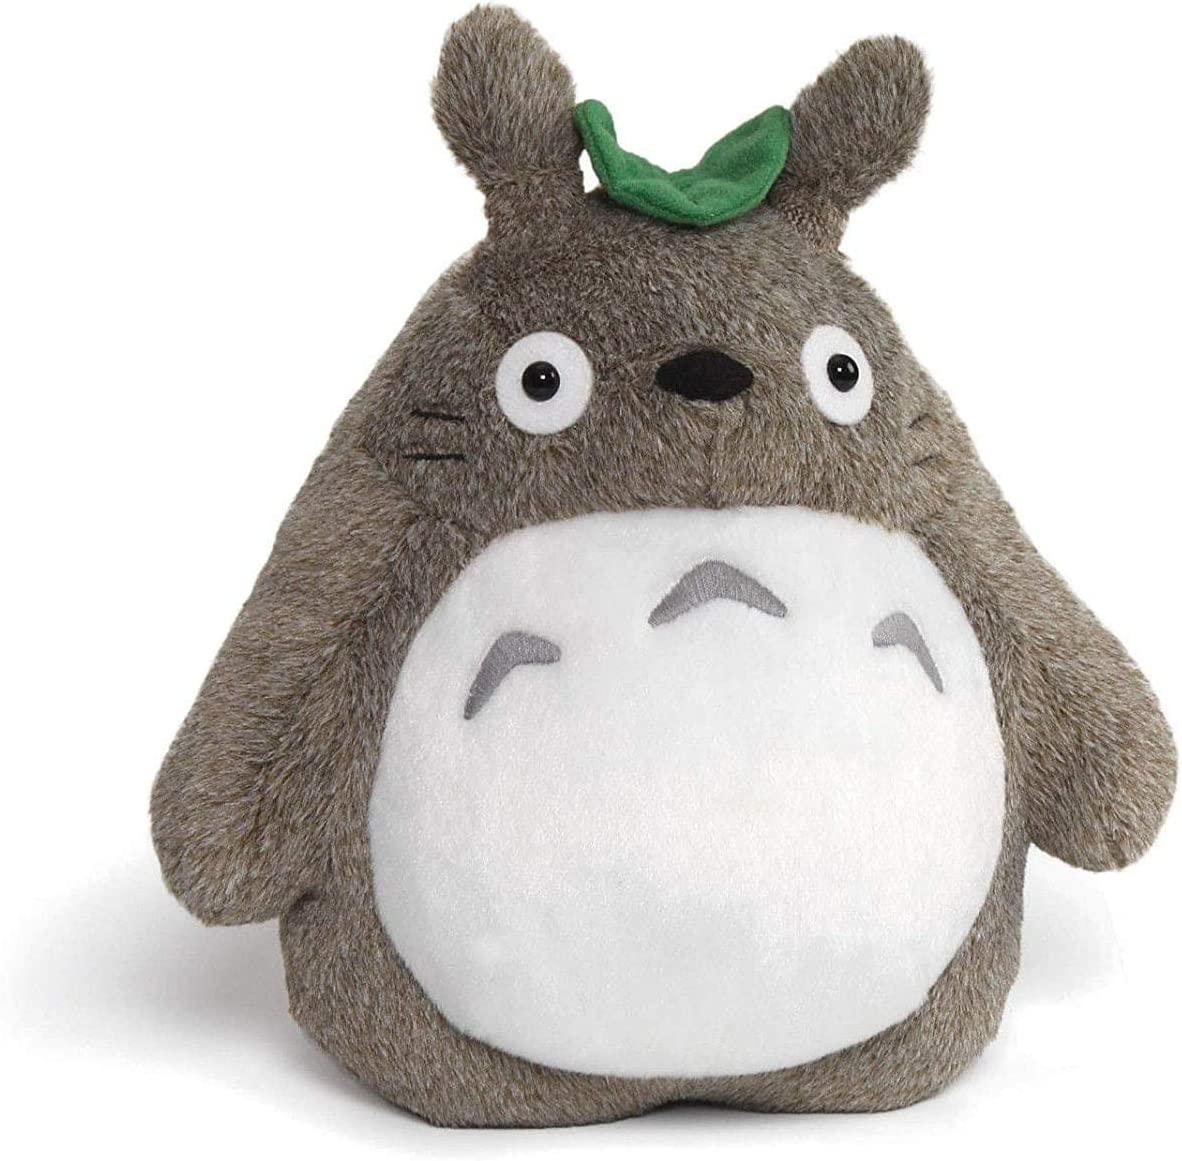 Gund Totoro Deluxe With Leaf Plush Figure 9 Toys Games Amazon Com